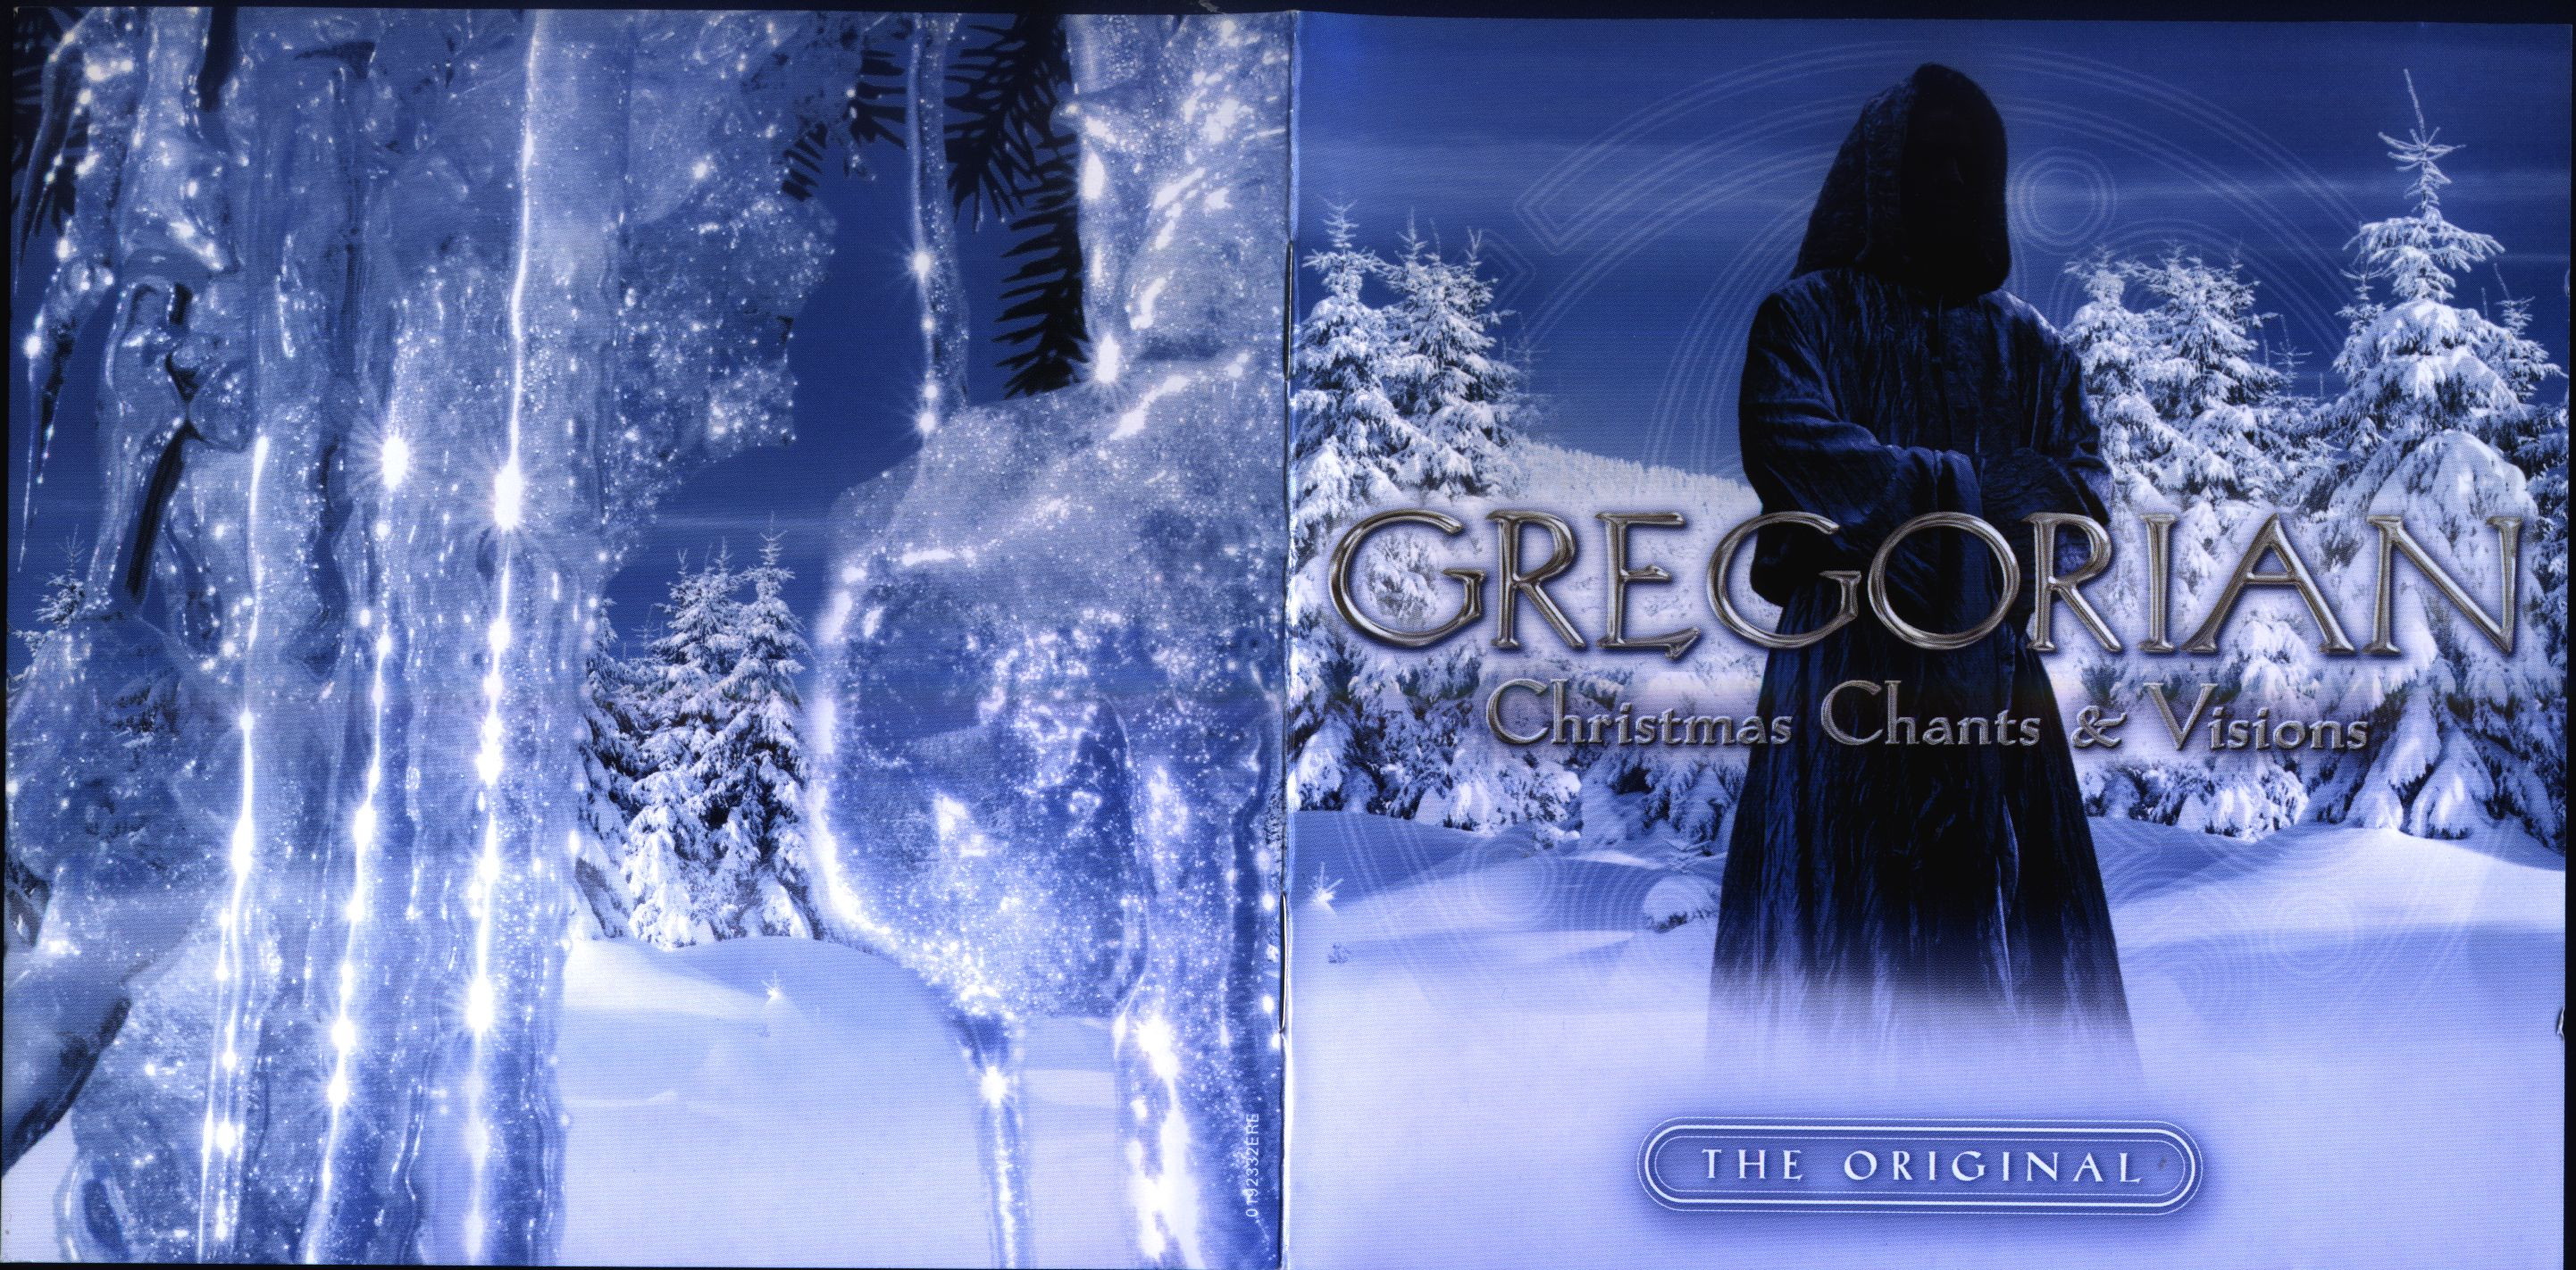 Gregorian Christmas Chants.Christmas Chants Visions By Gregorian Music Charts